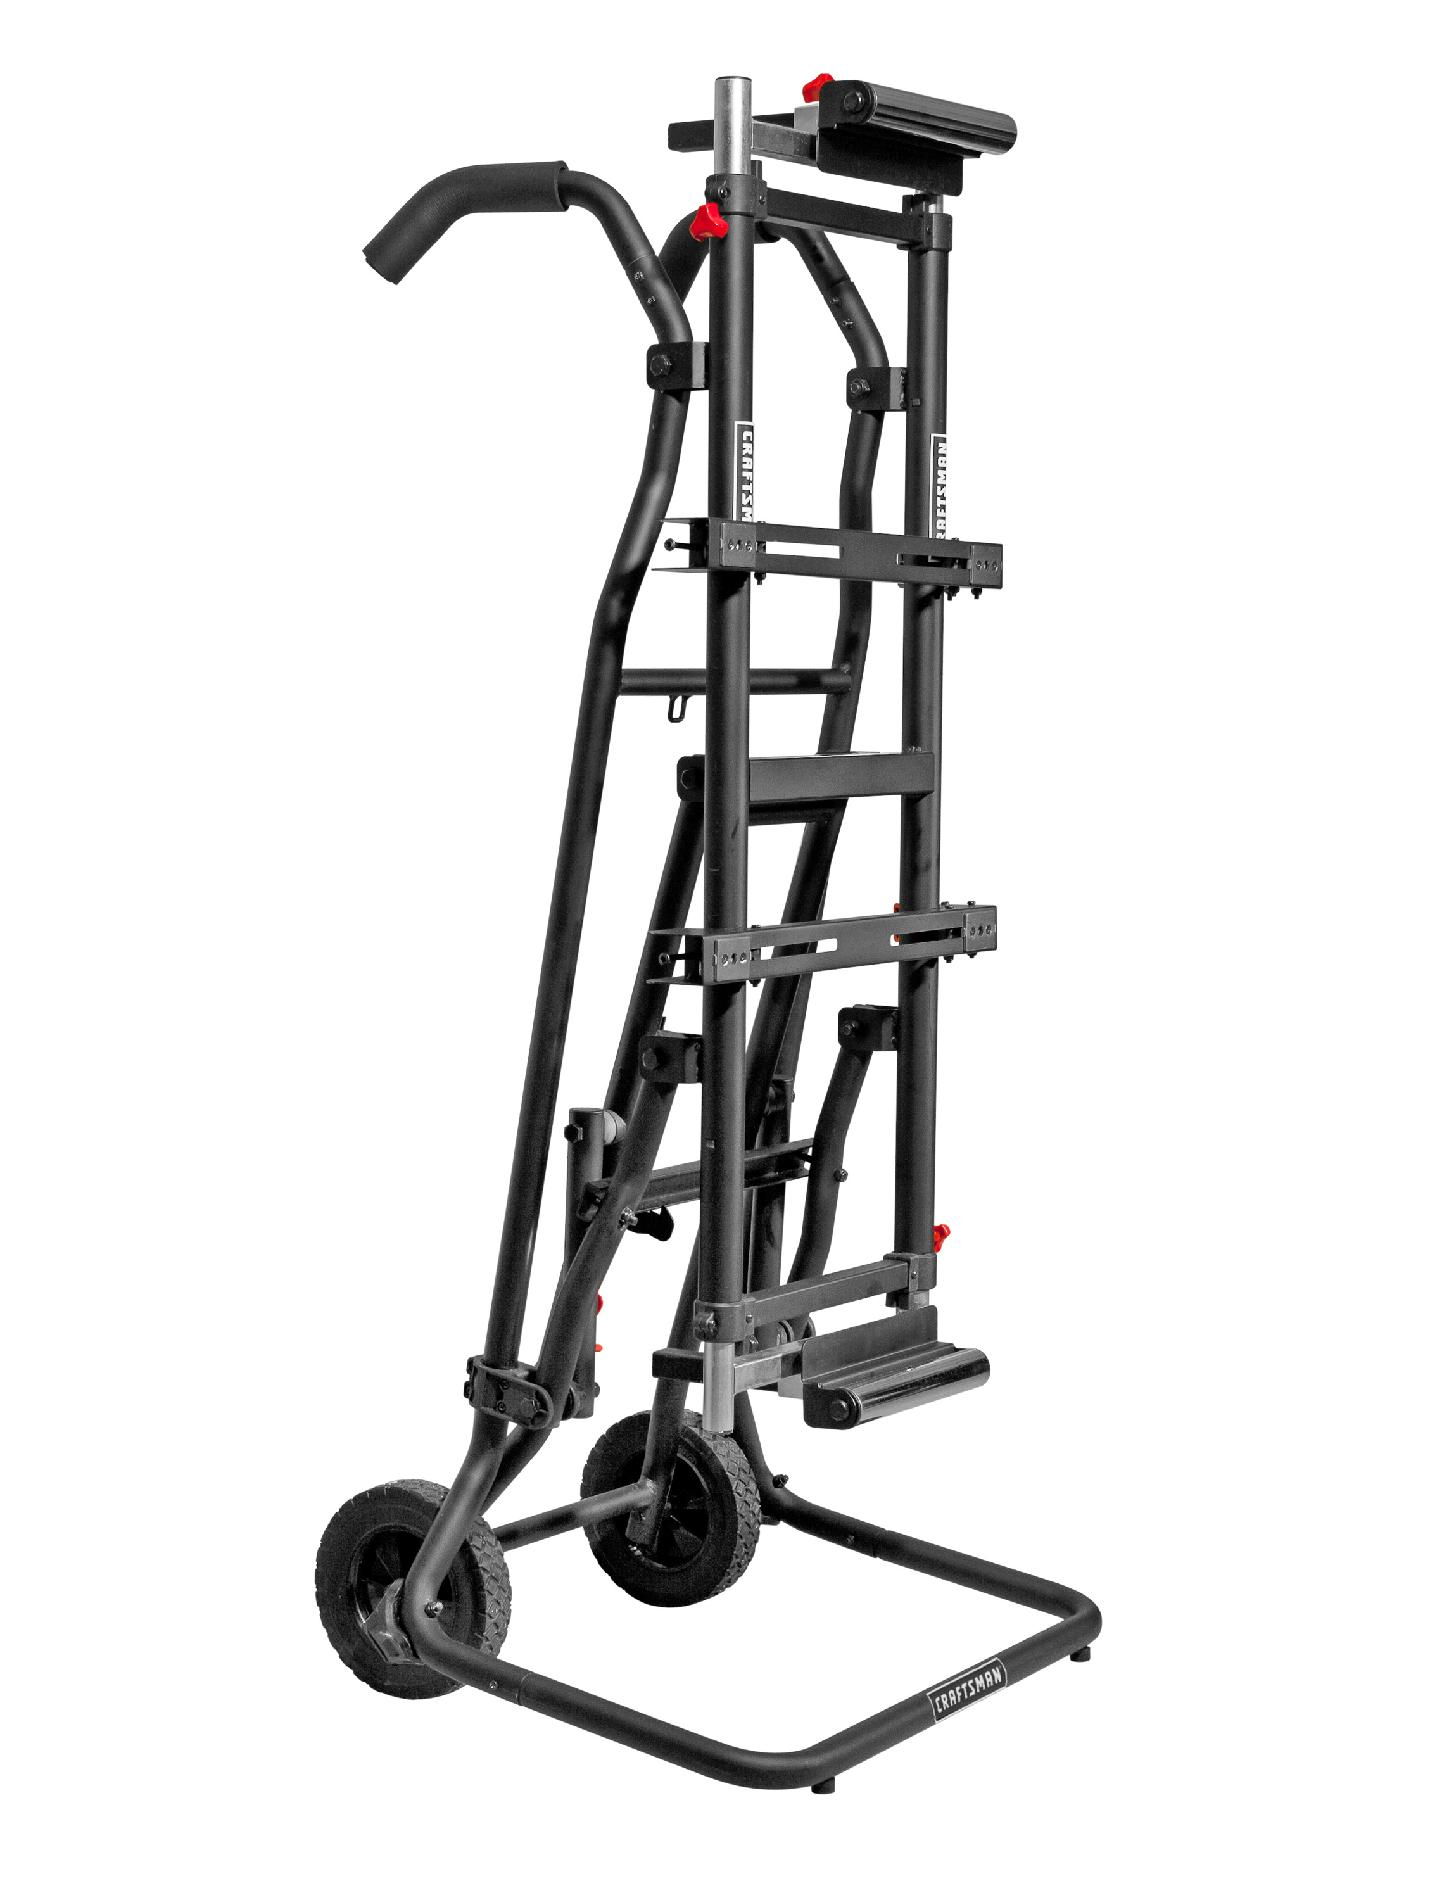 Craftsman Quick Lift™ Gravity Stand